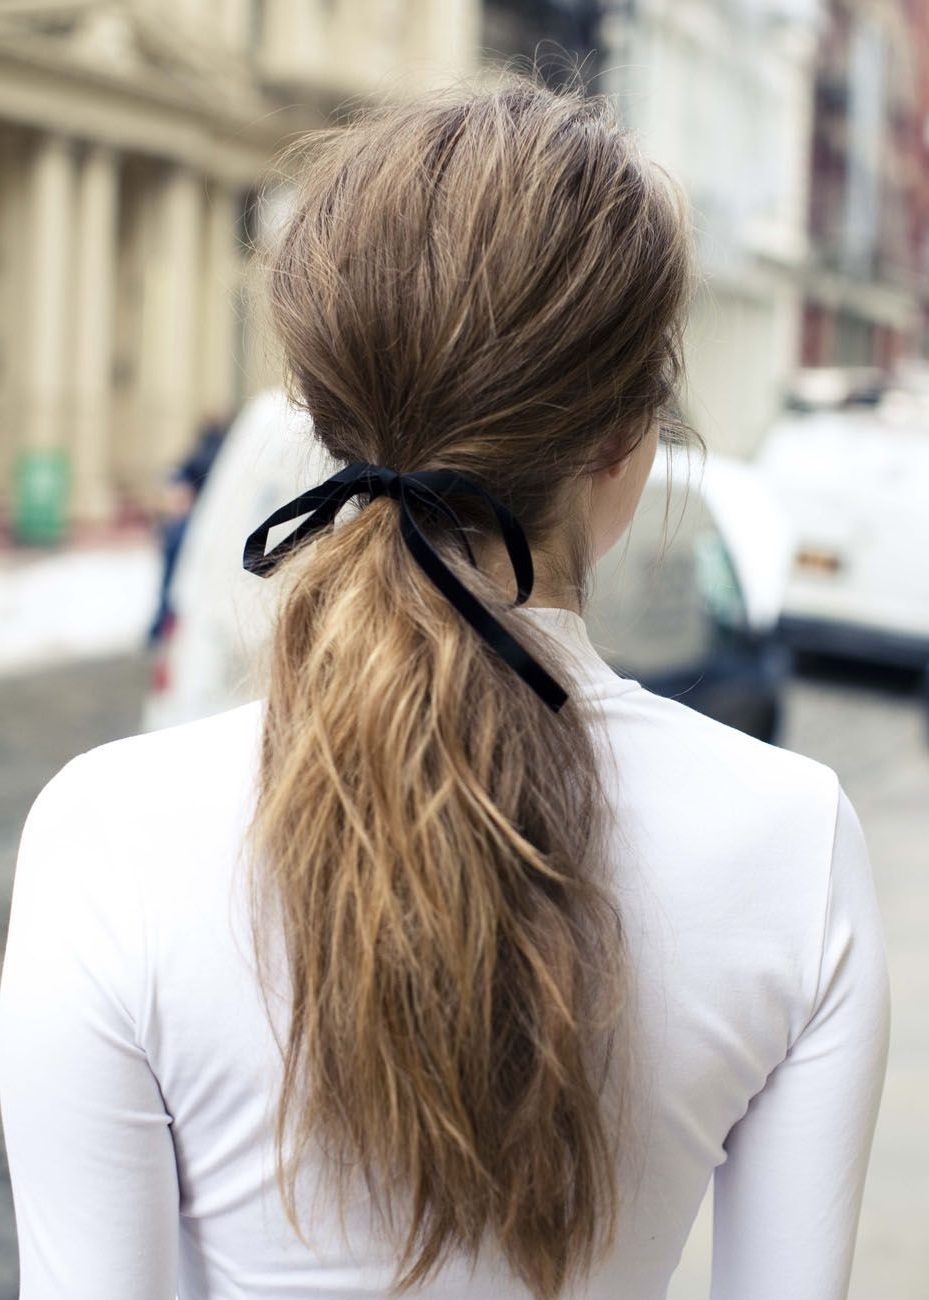 How To Make Even The Simplest Ponytail Pretty (View 9 of 20)